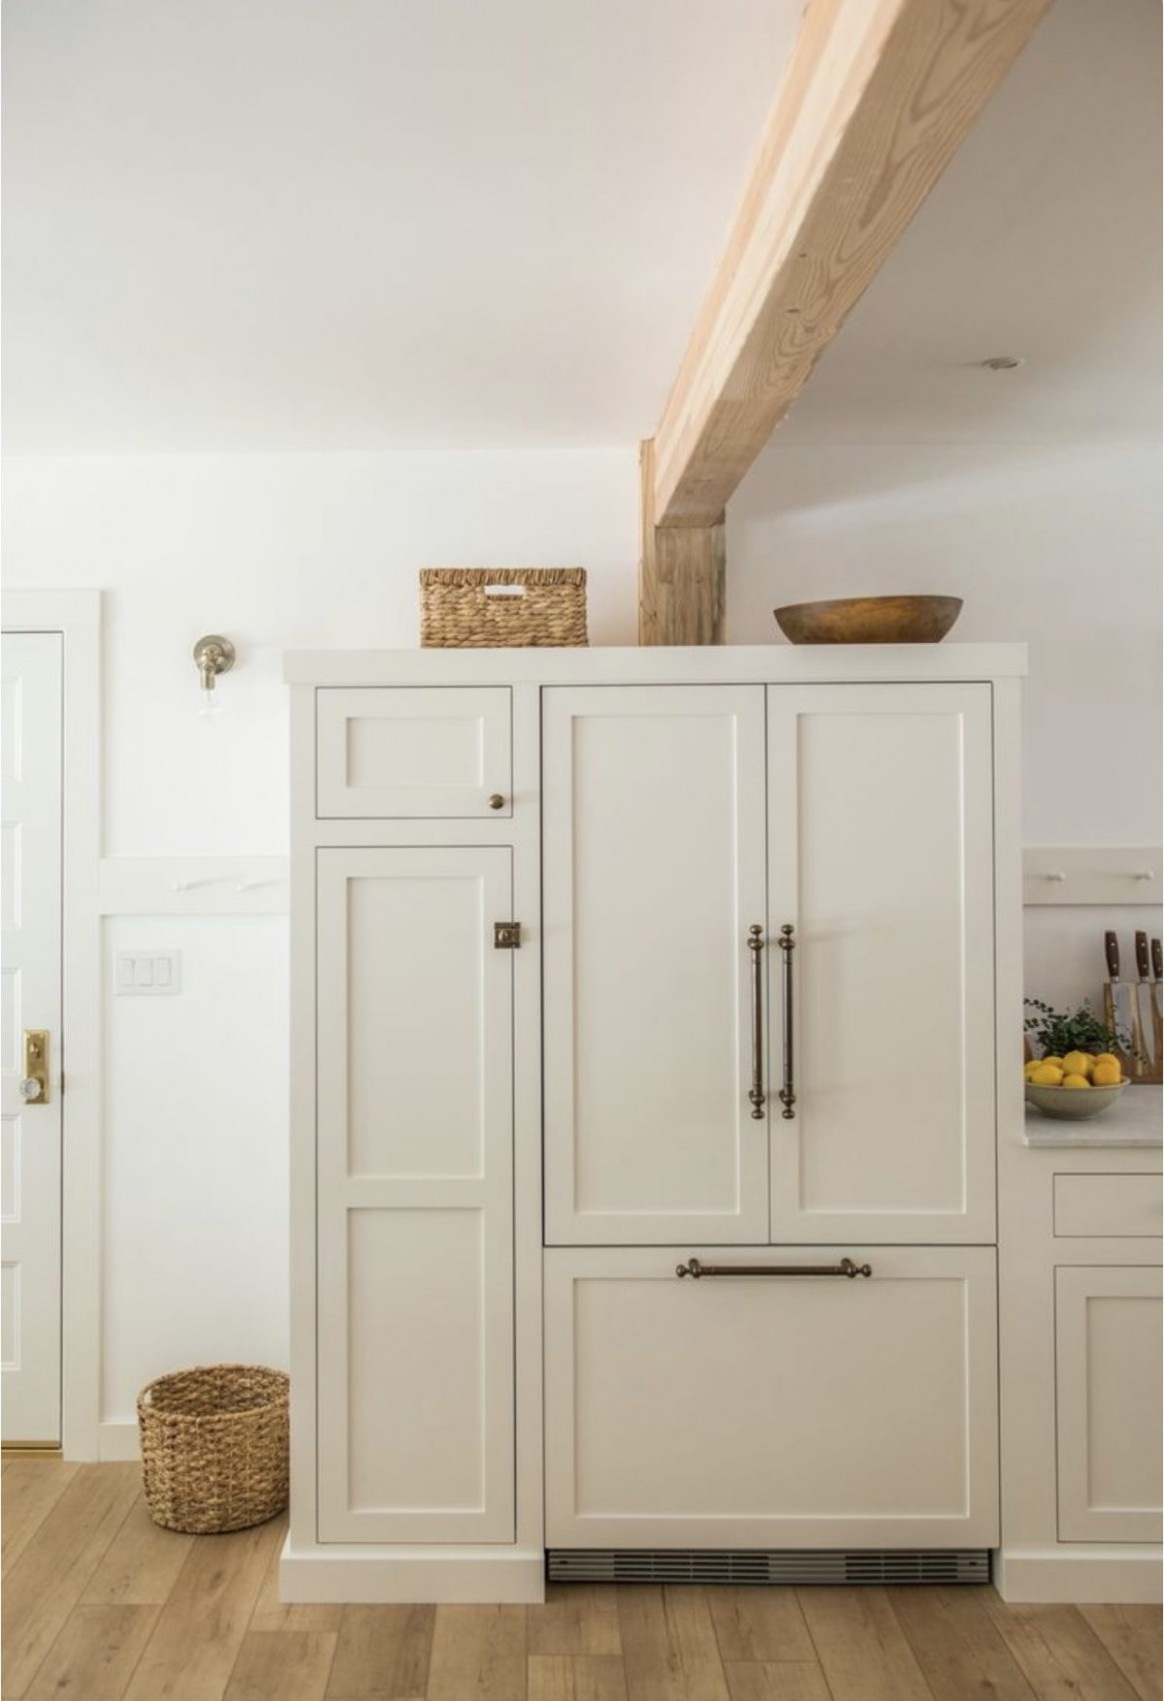 Kitchen Plans and Paint Recommendations for Cabinets - Goldalamode - Swiss Coffee Paint Kitchen Cabinets